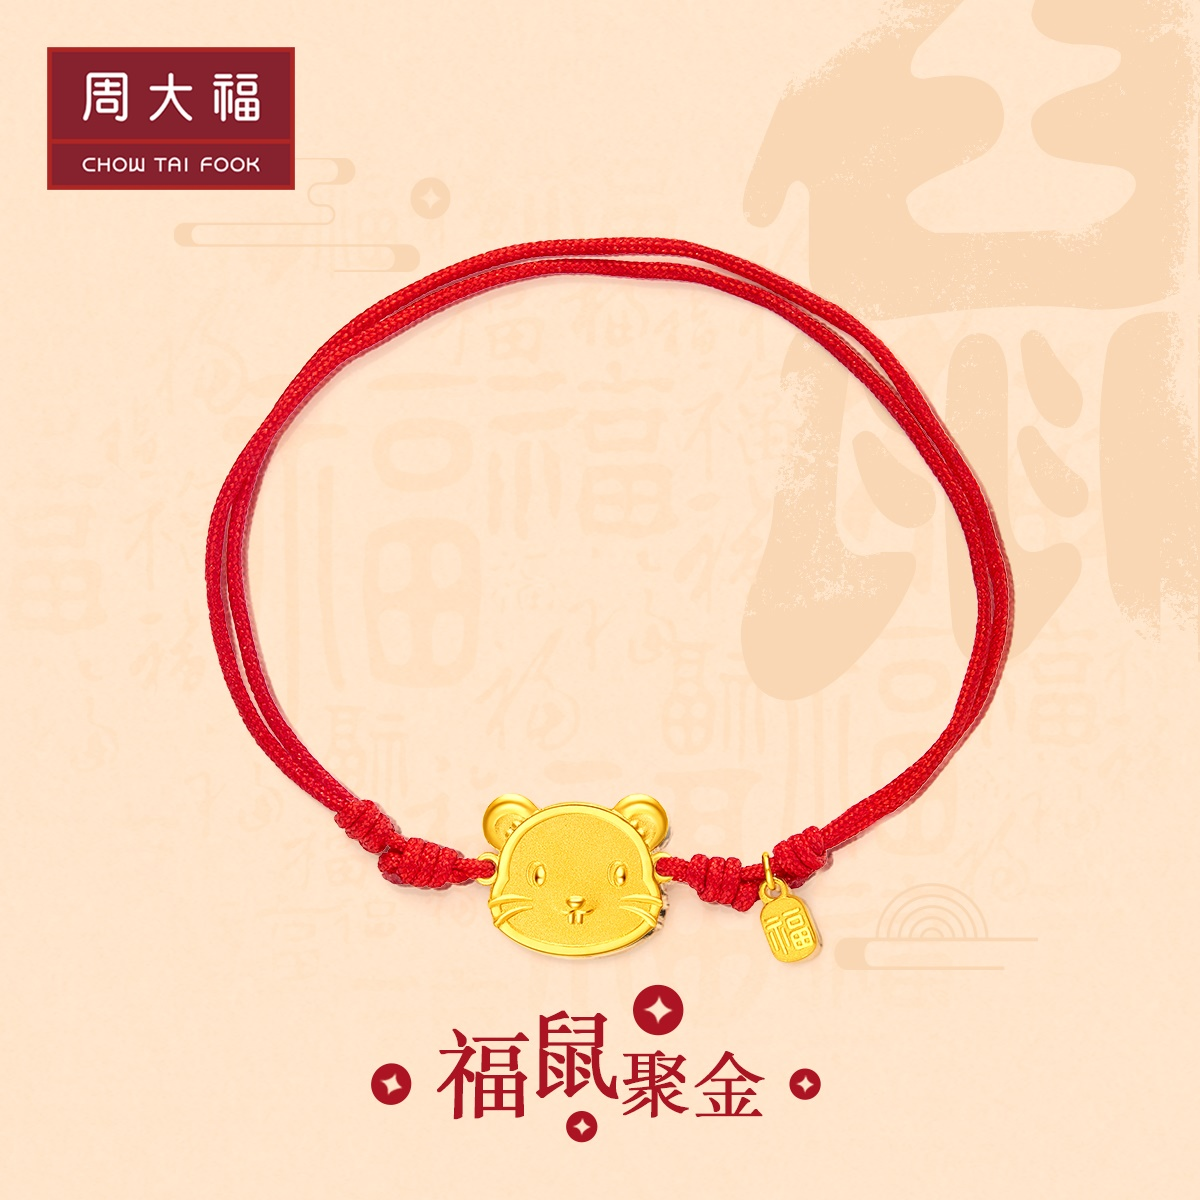 Zhoudafu 12 Chinese Zodiac Gold Red Rope Bracelet pricing cost 108 yuan f more than